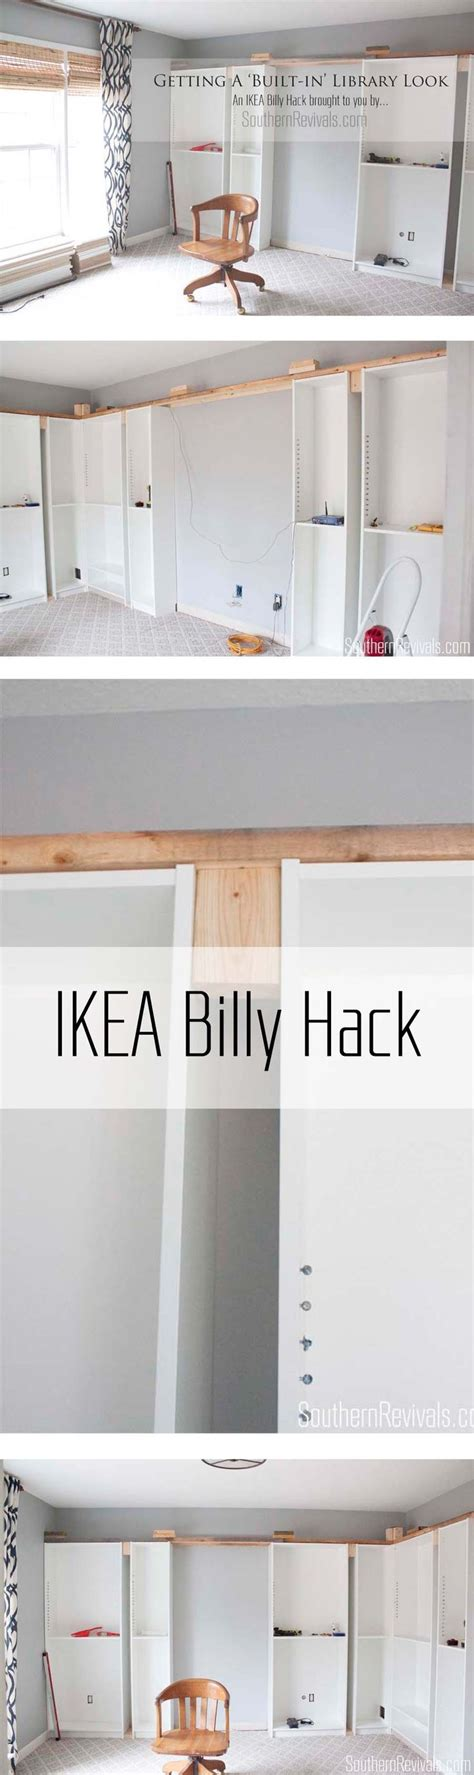 ikea hack bed bridge bookcase 428 best images about home small but smart on pinterest